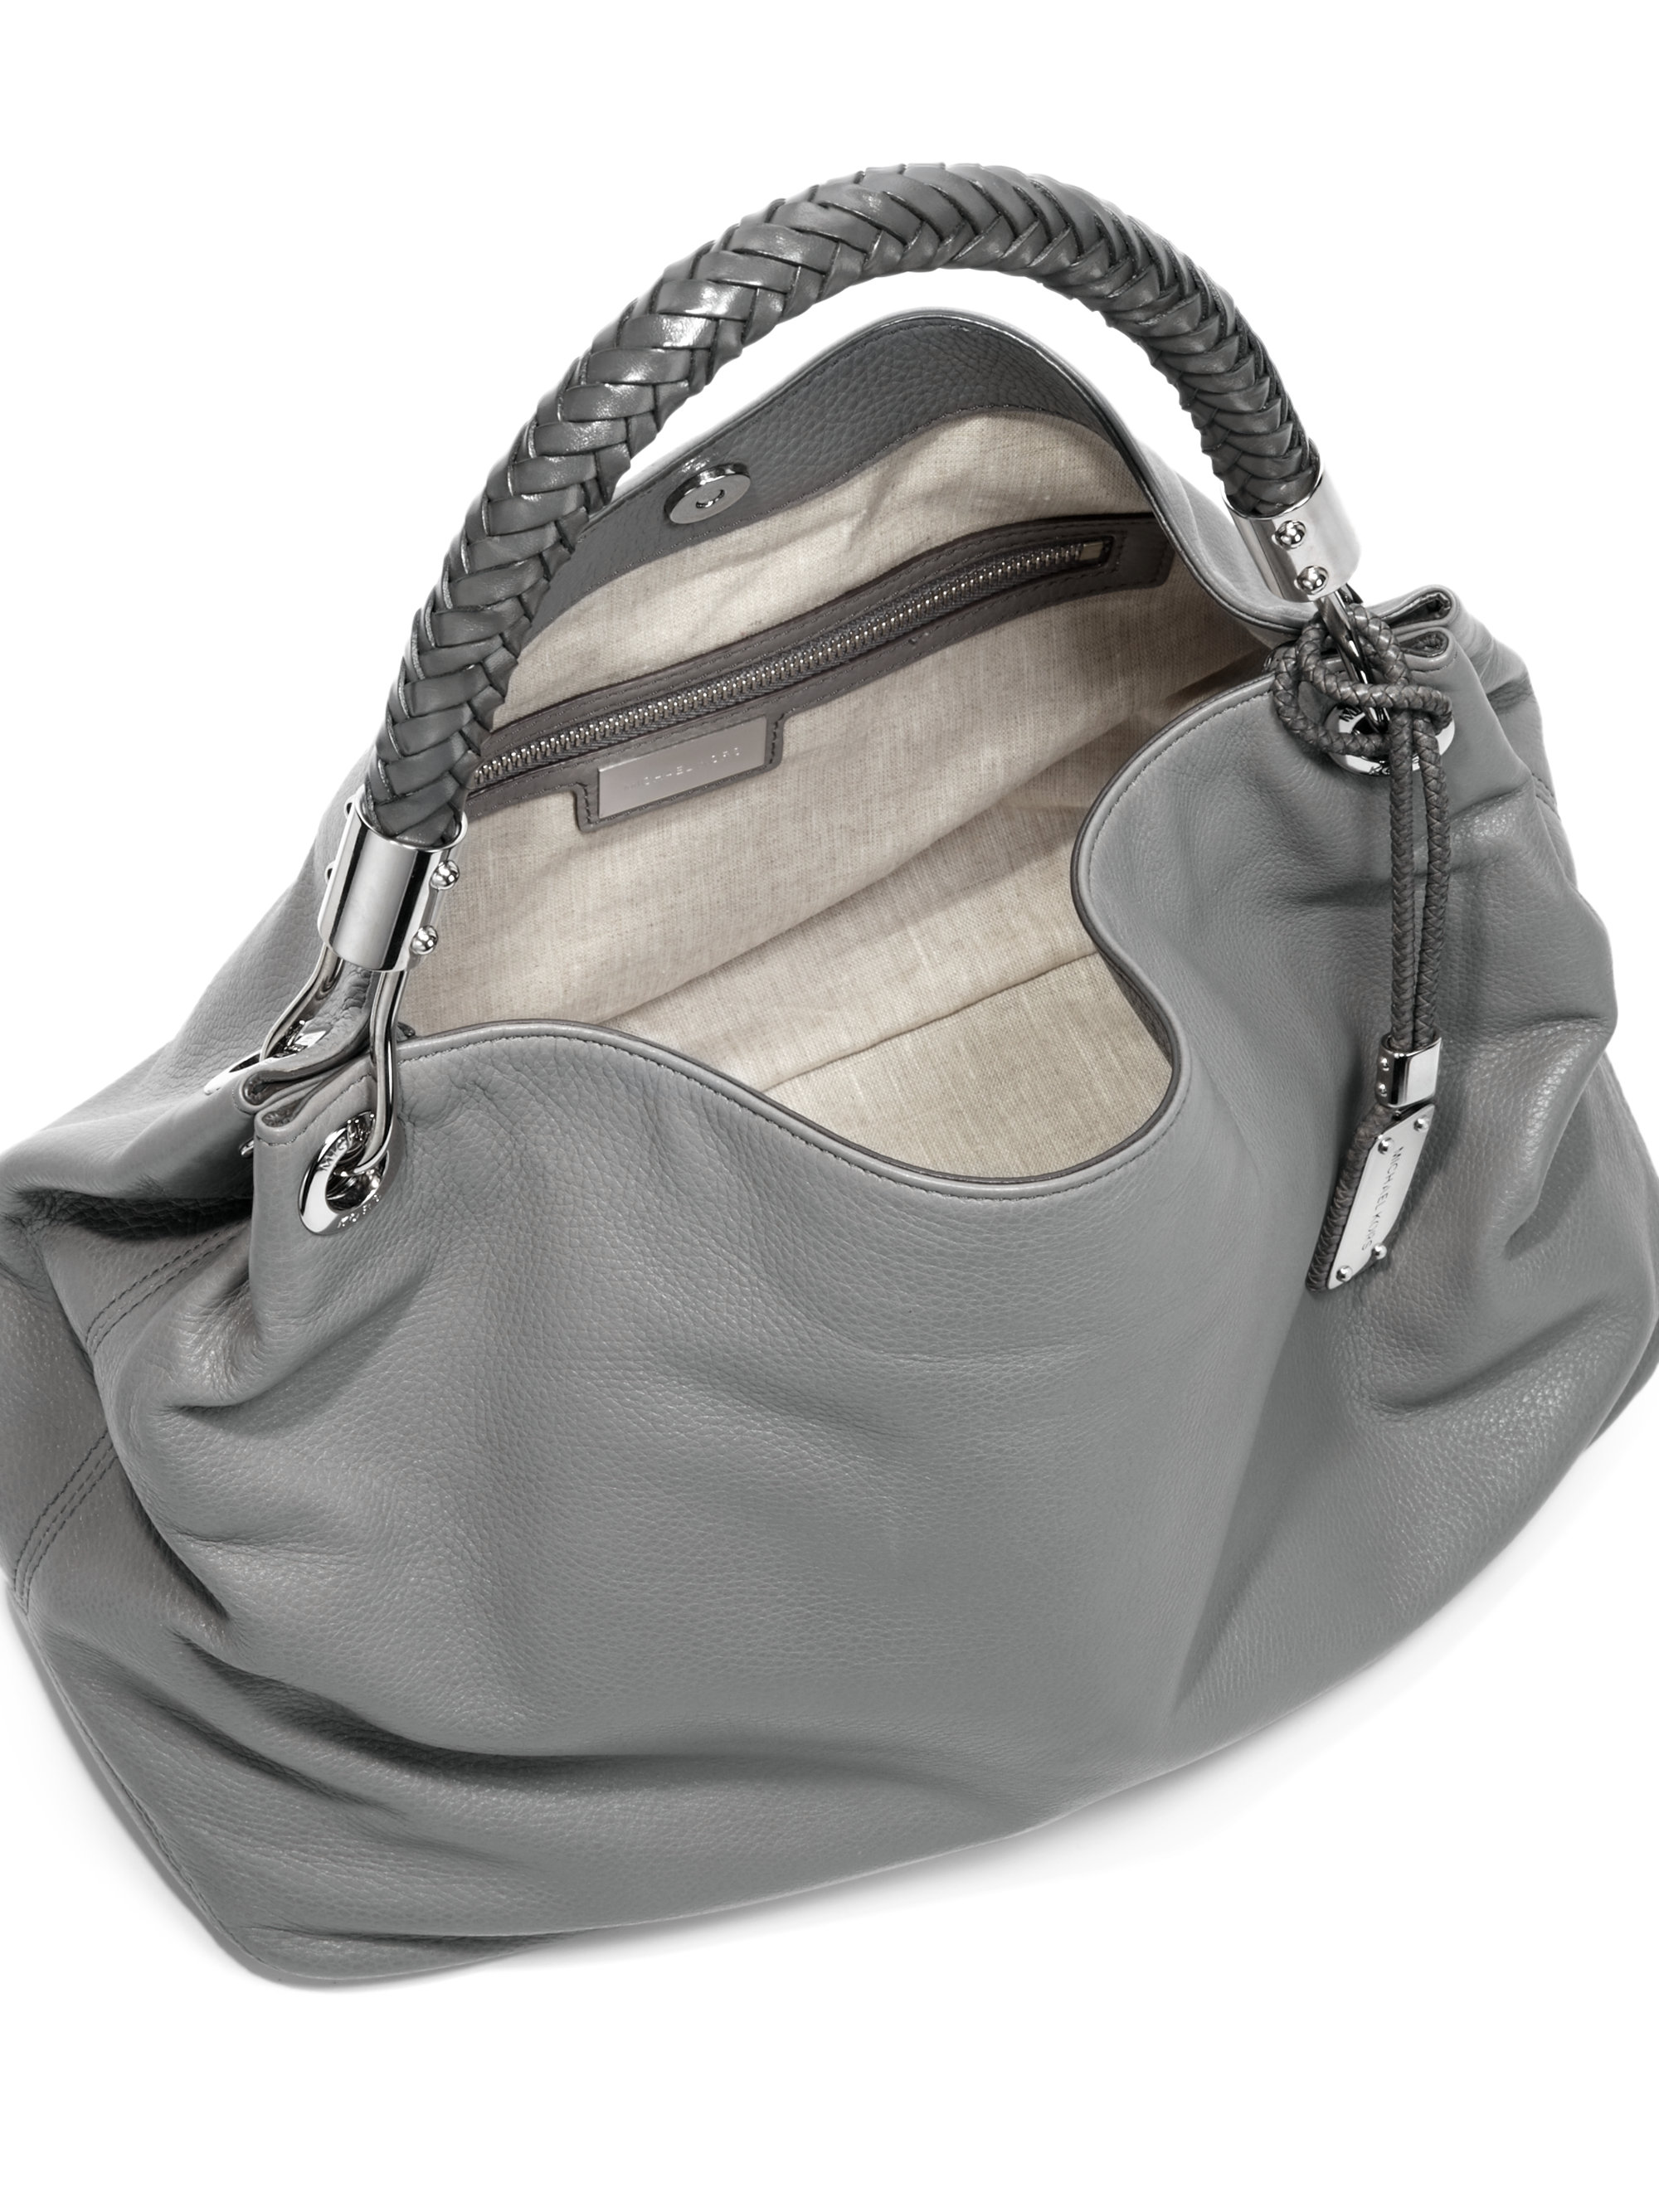 329b8b29cb80 Michael Kors Skorpios Leather Shoulder Bag in Gray - Lyst